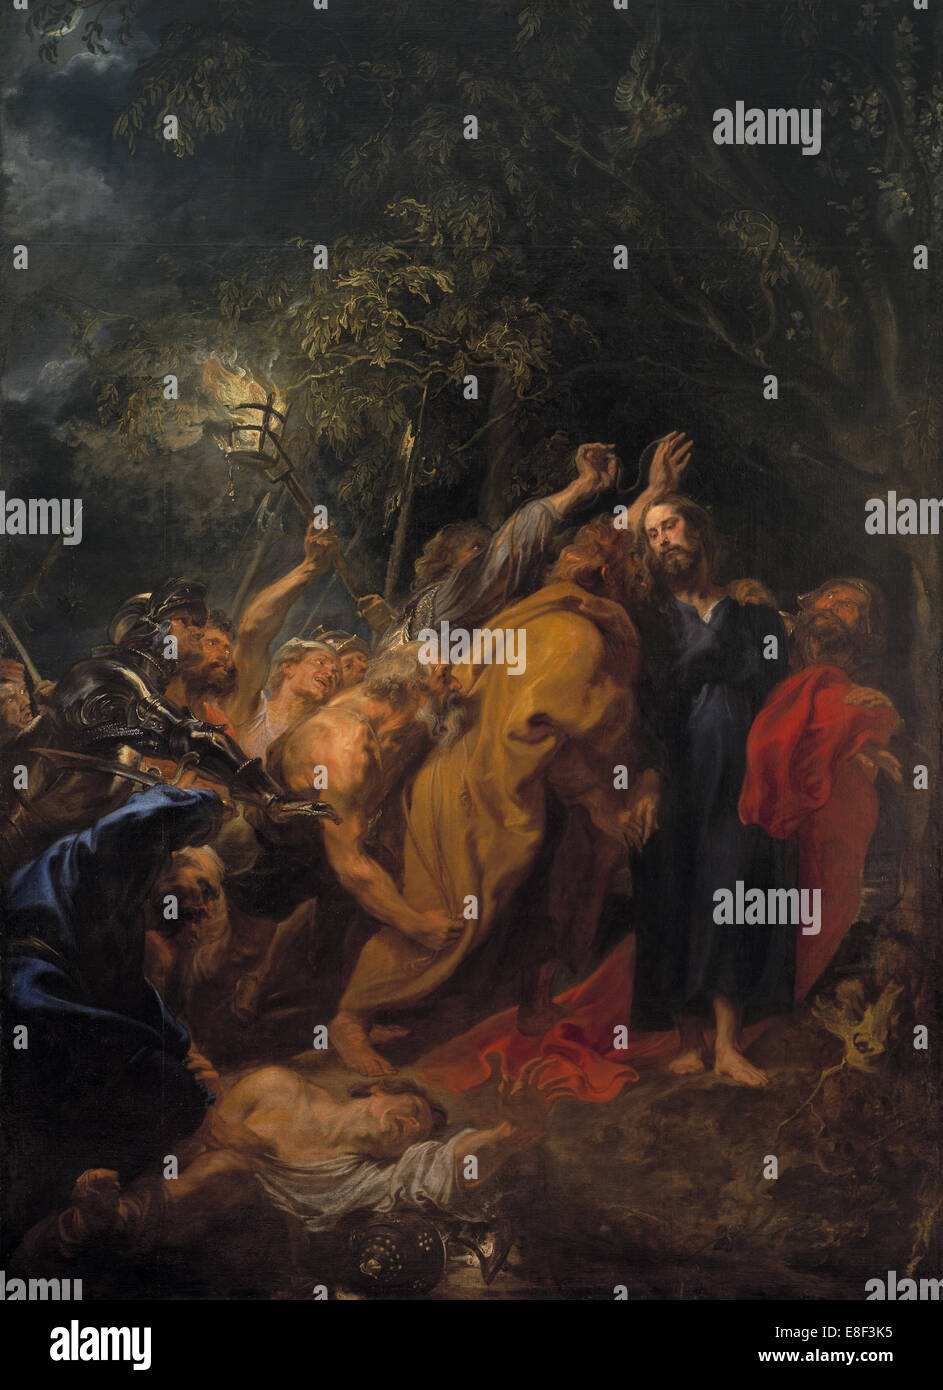 The Capture of Christ. Artist: Dyck, Sir Anthony van (1599-1641) - Stock Image